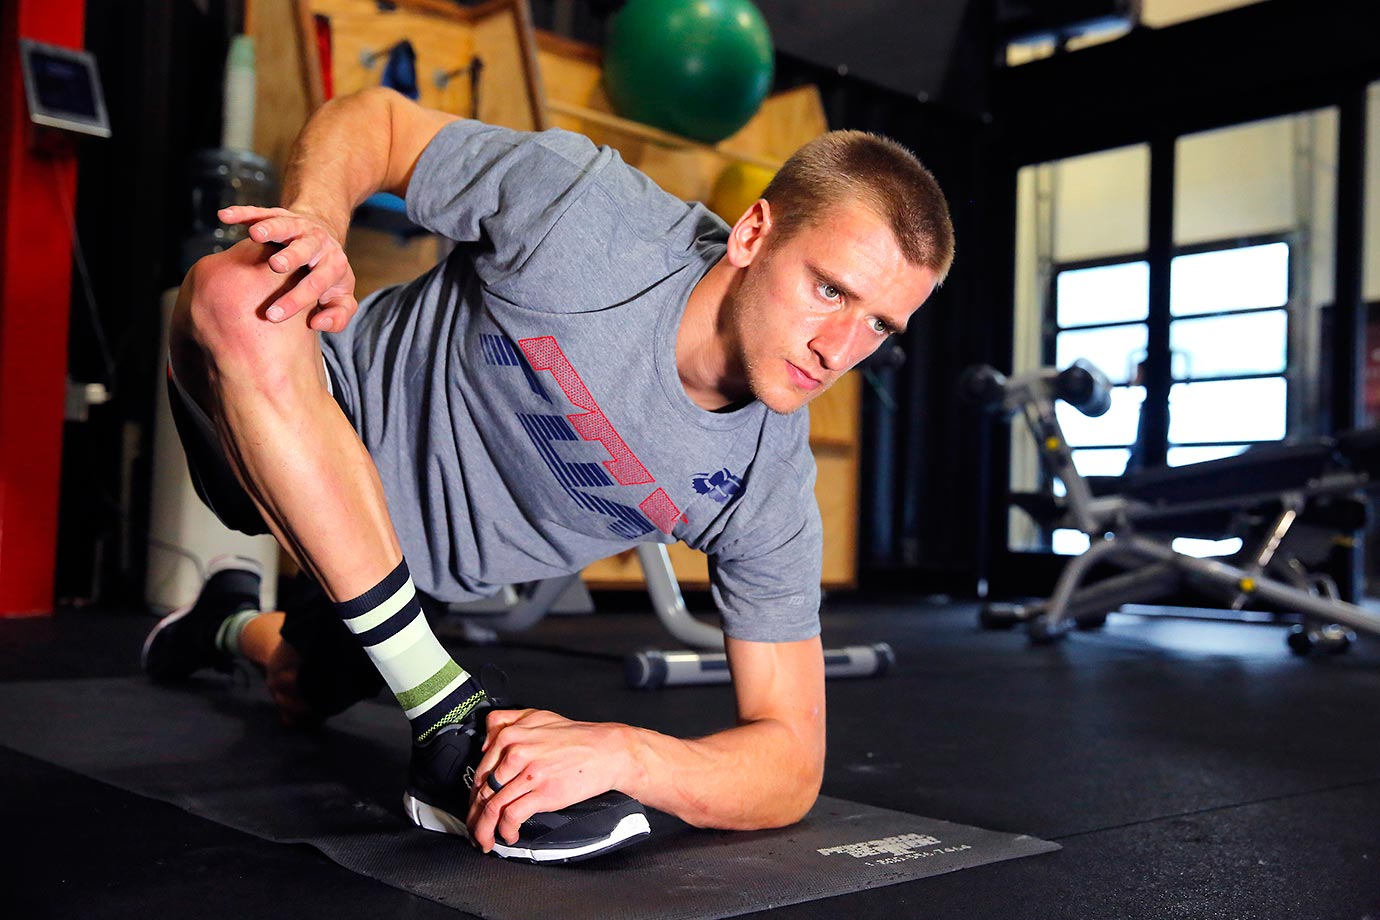 Stretching and flexibility help Ken Roczen perform at the highest level of his physically demanding sport.